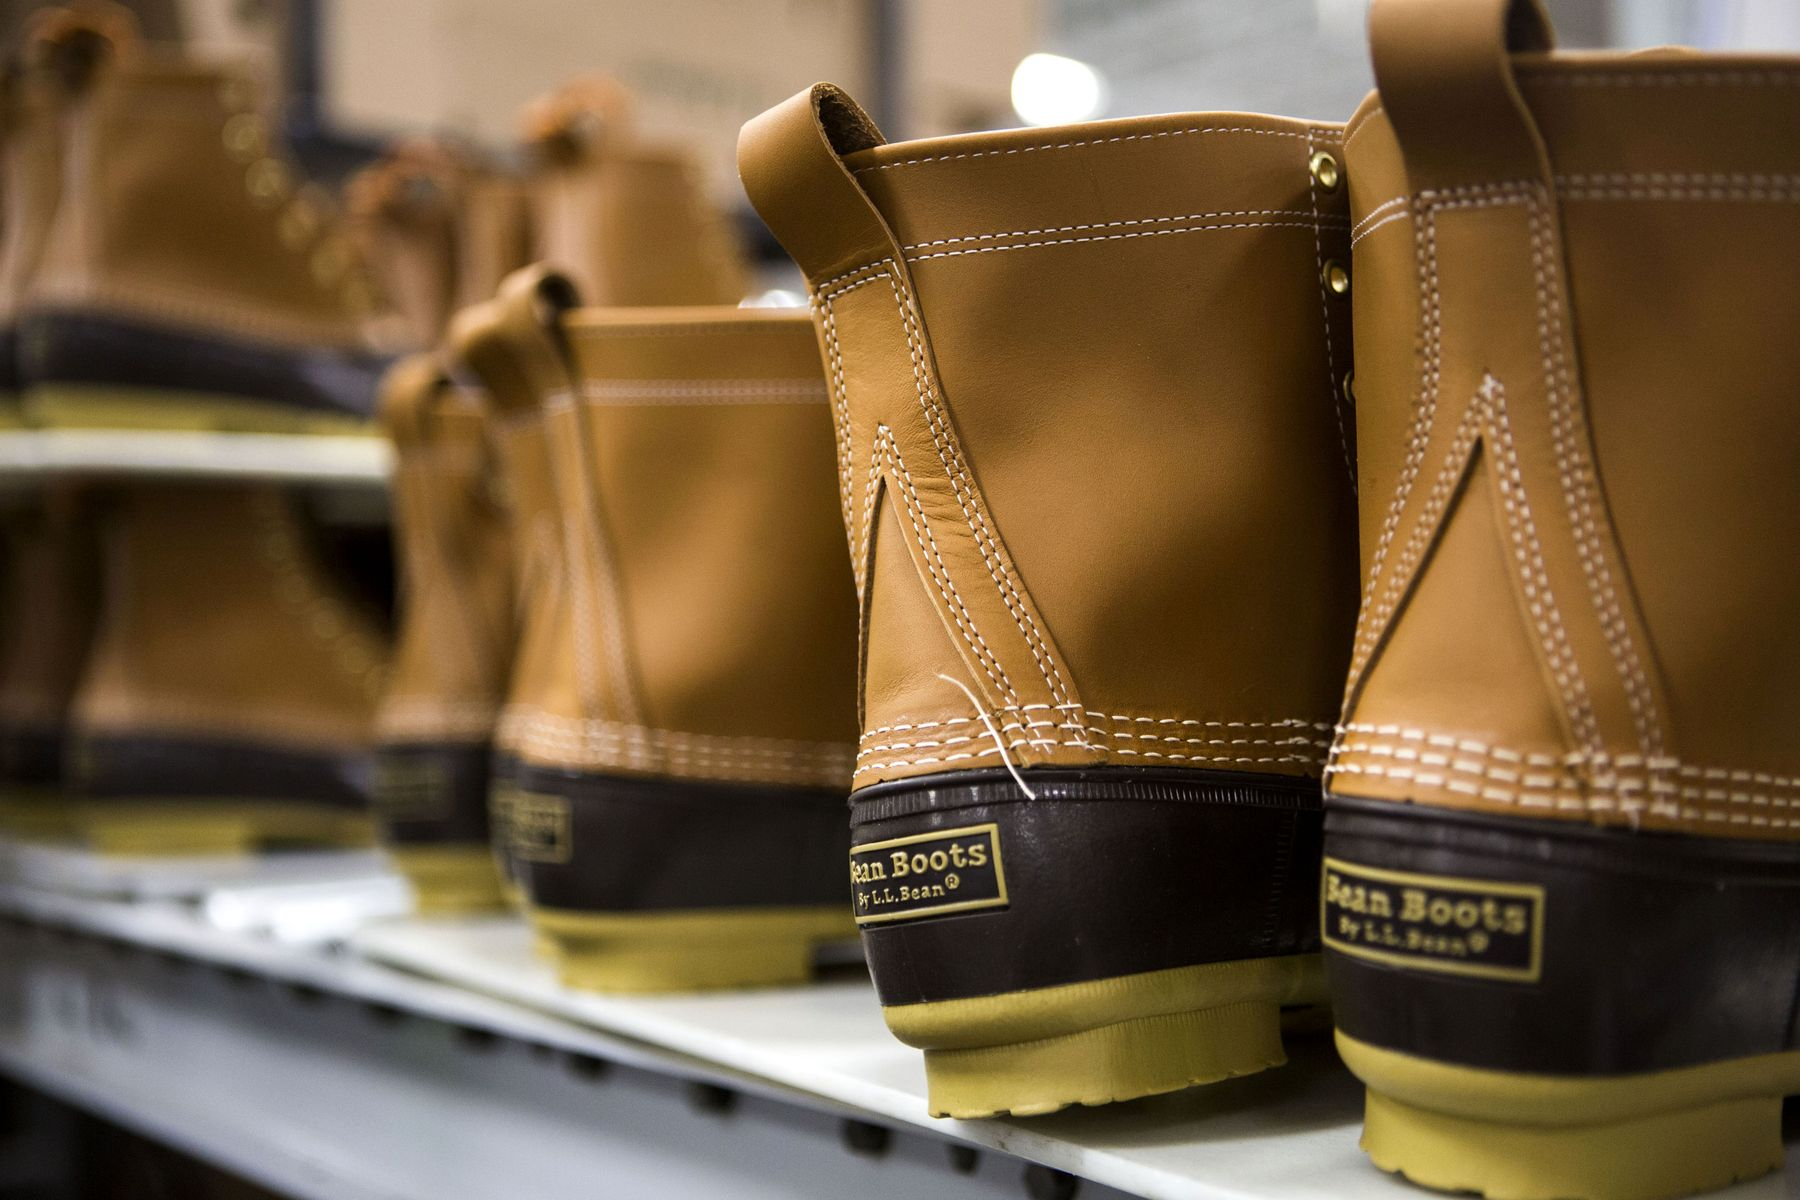 Classy Move Class Action Lawsuit Filed Against LL Bean